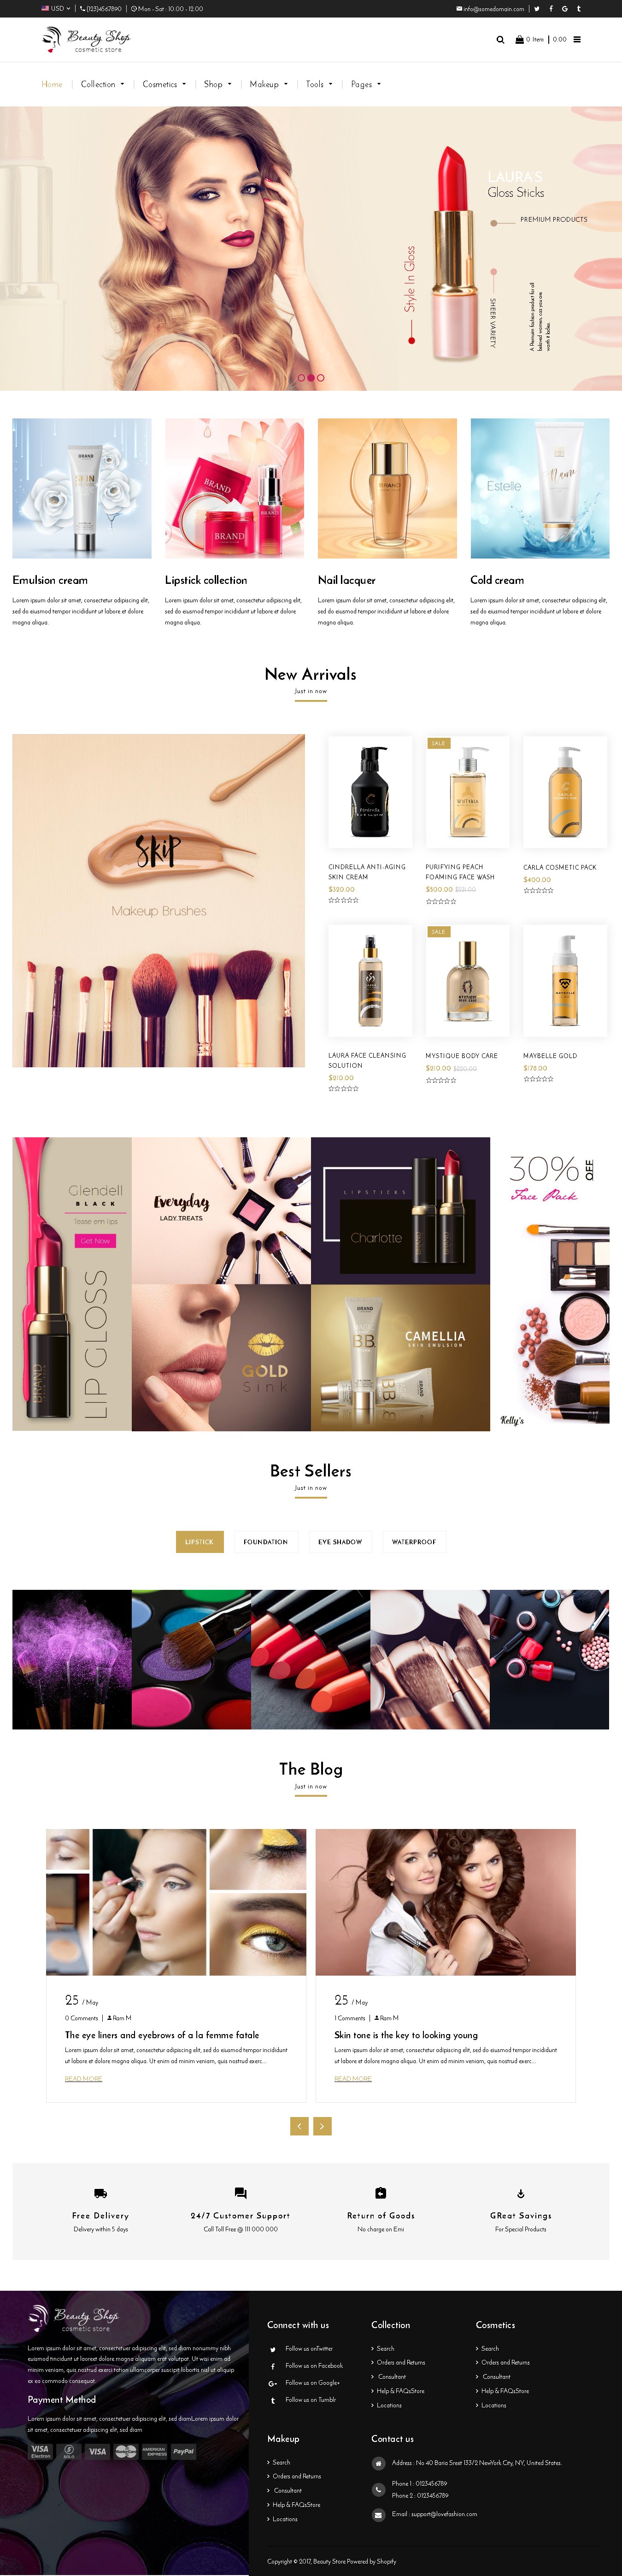 5 Best SHOPIFY Premium Themes Collection for Cosmetics Stores 2017 -Beauty – Cosmetics and Fashion Beauty Shopify Theme